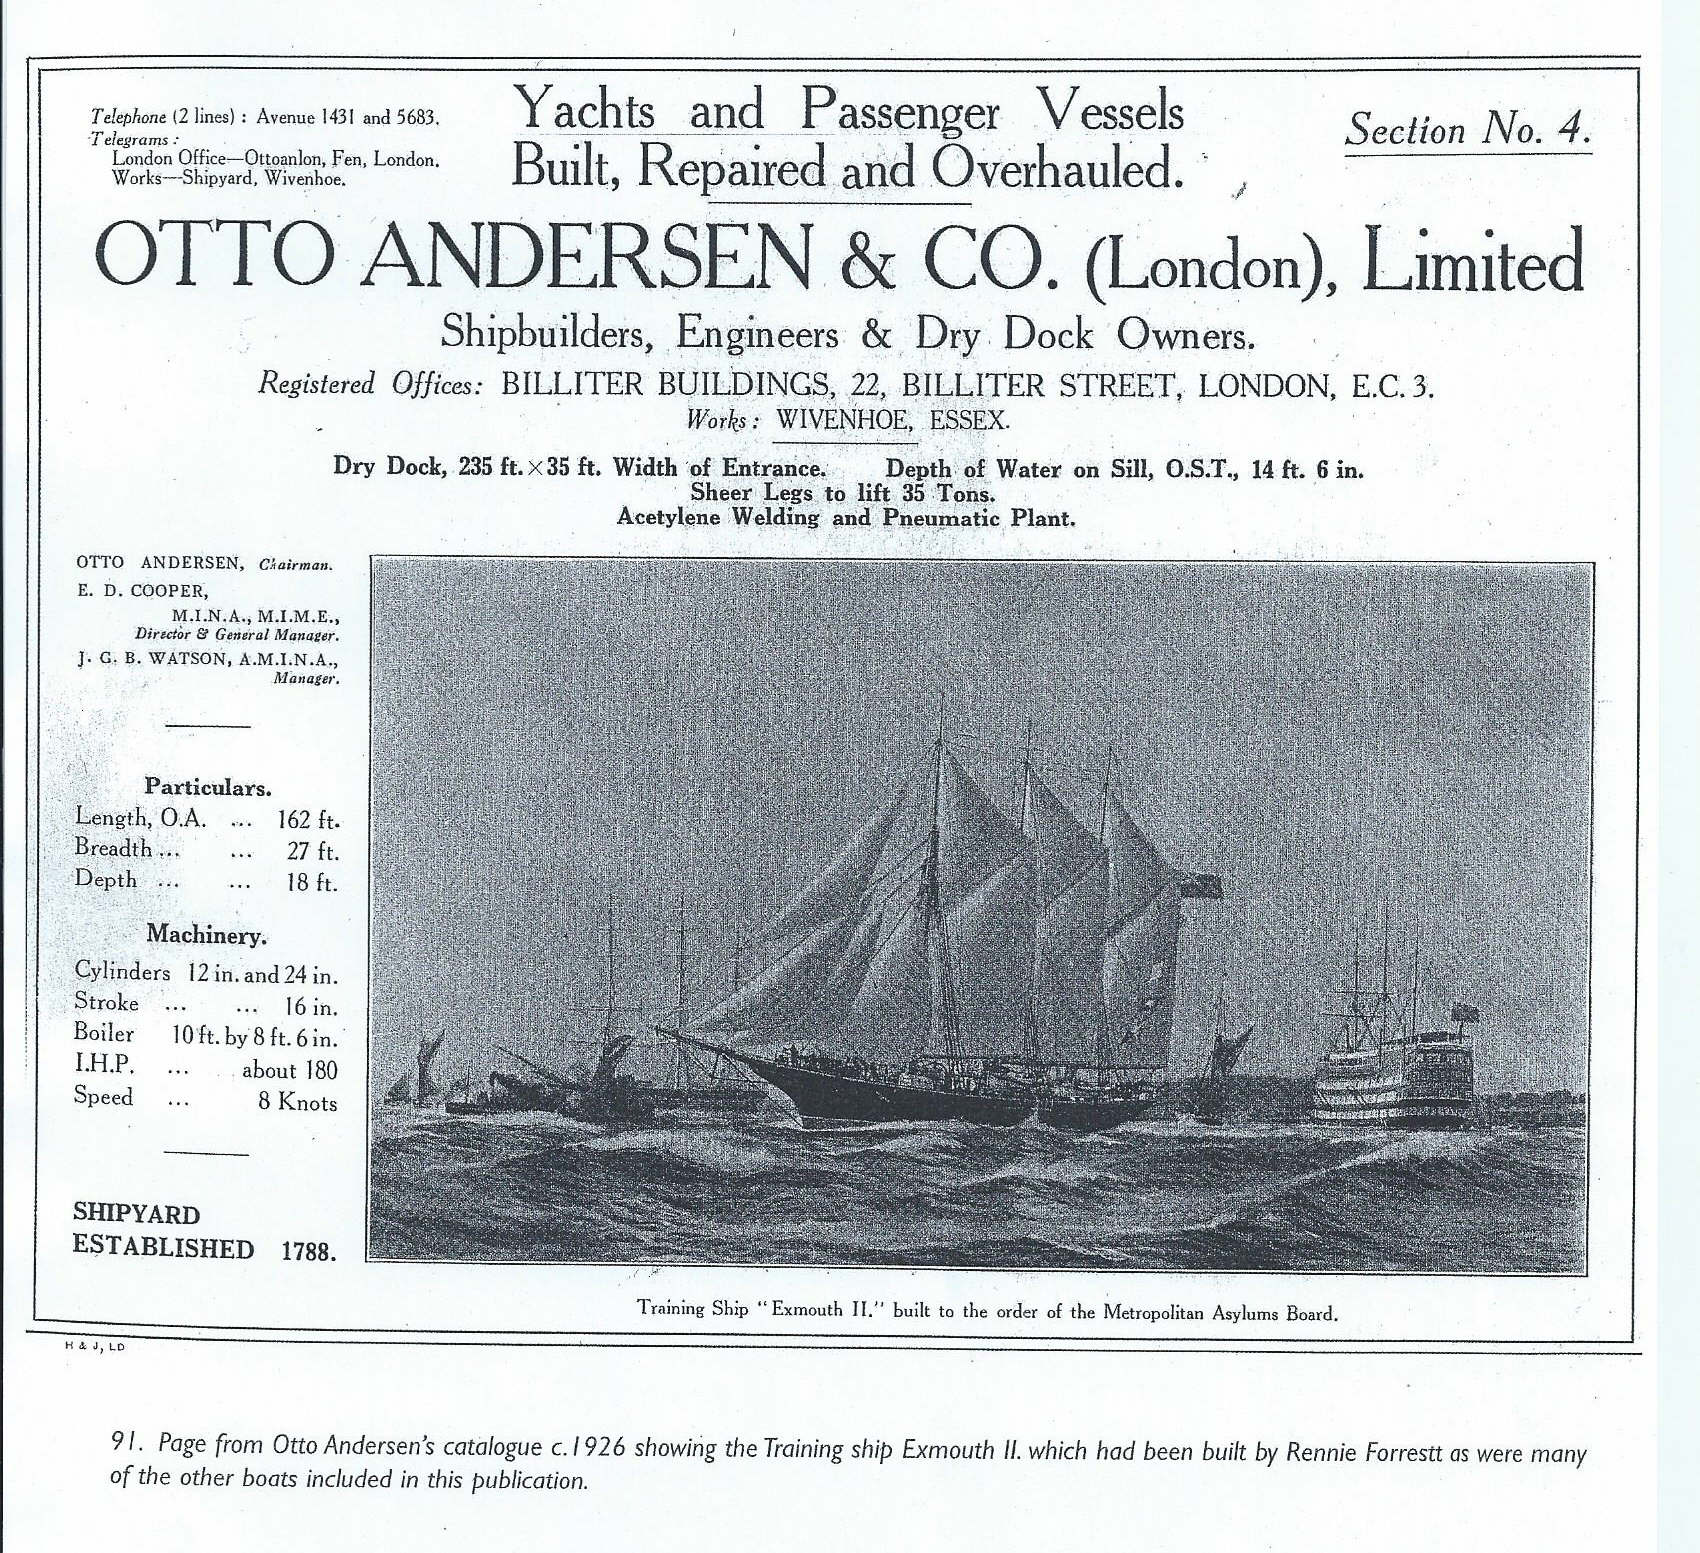 An advert which appeared in Otto Andersen's catalogue of around 1926 showing the training ship Exmouth II which had actually been built by Rennie Forrestt, the company that had previously owned the yard.